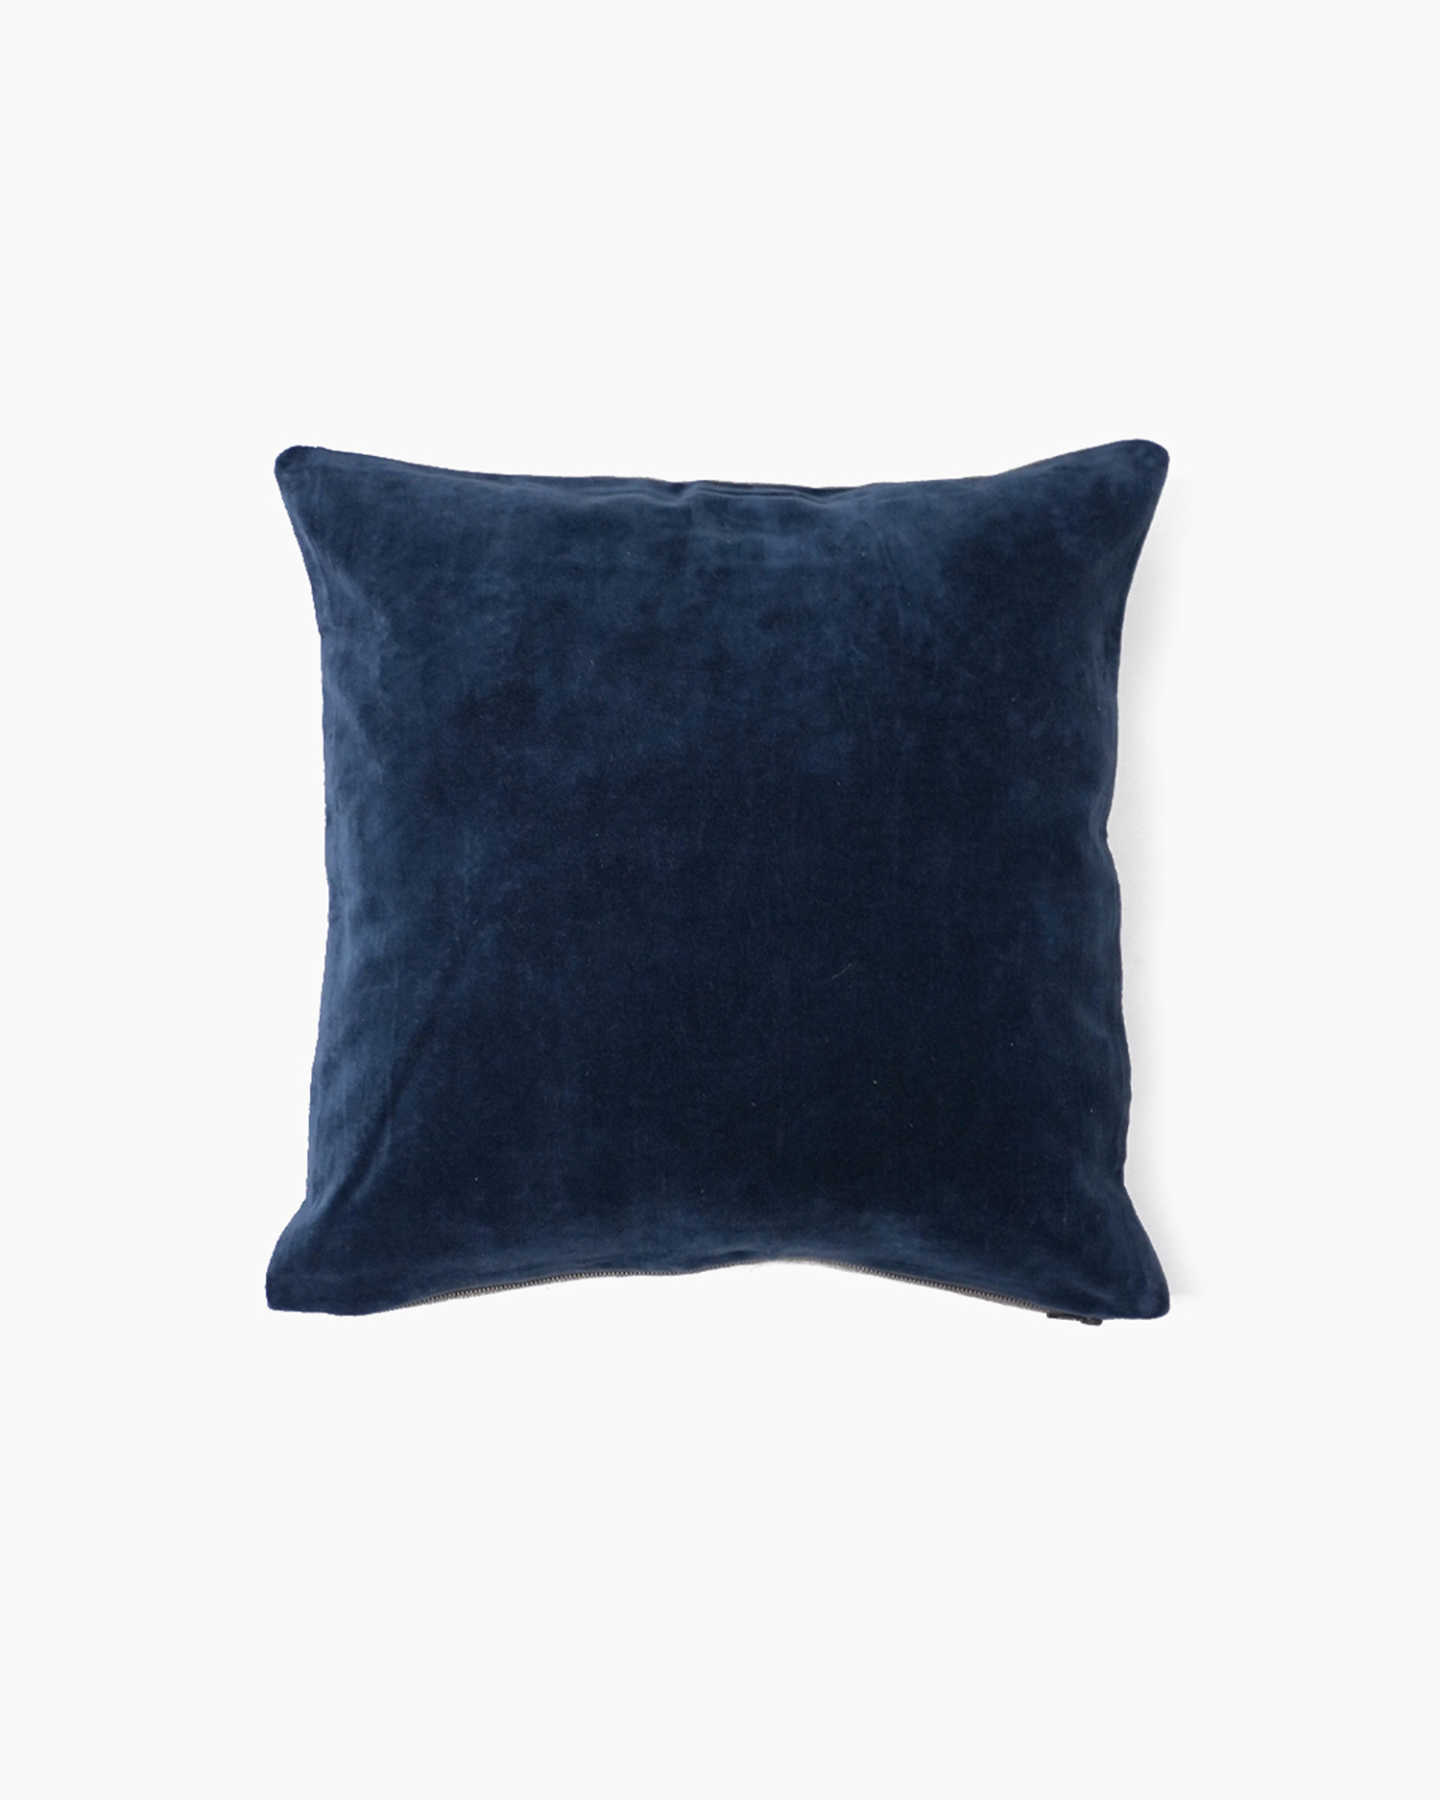 Plush Velvet Pillow Cover  - undefined - 0